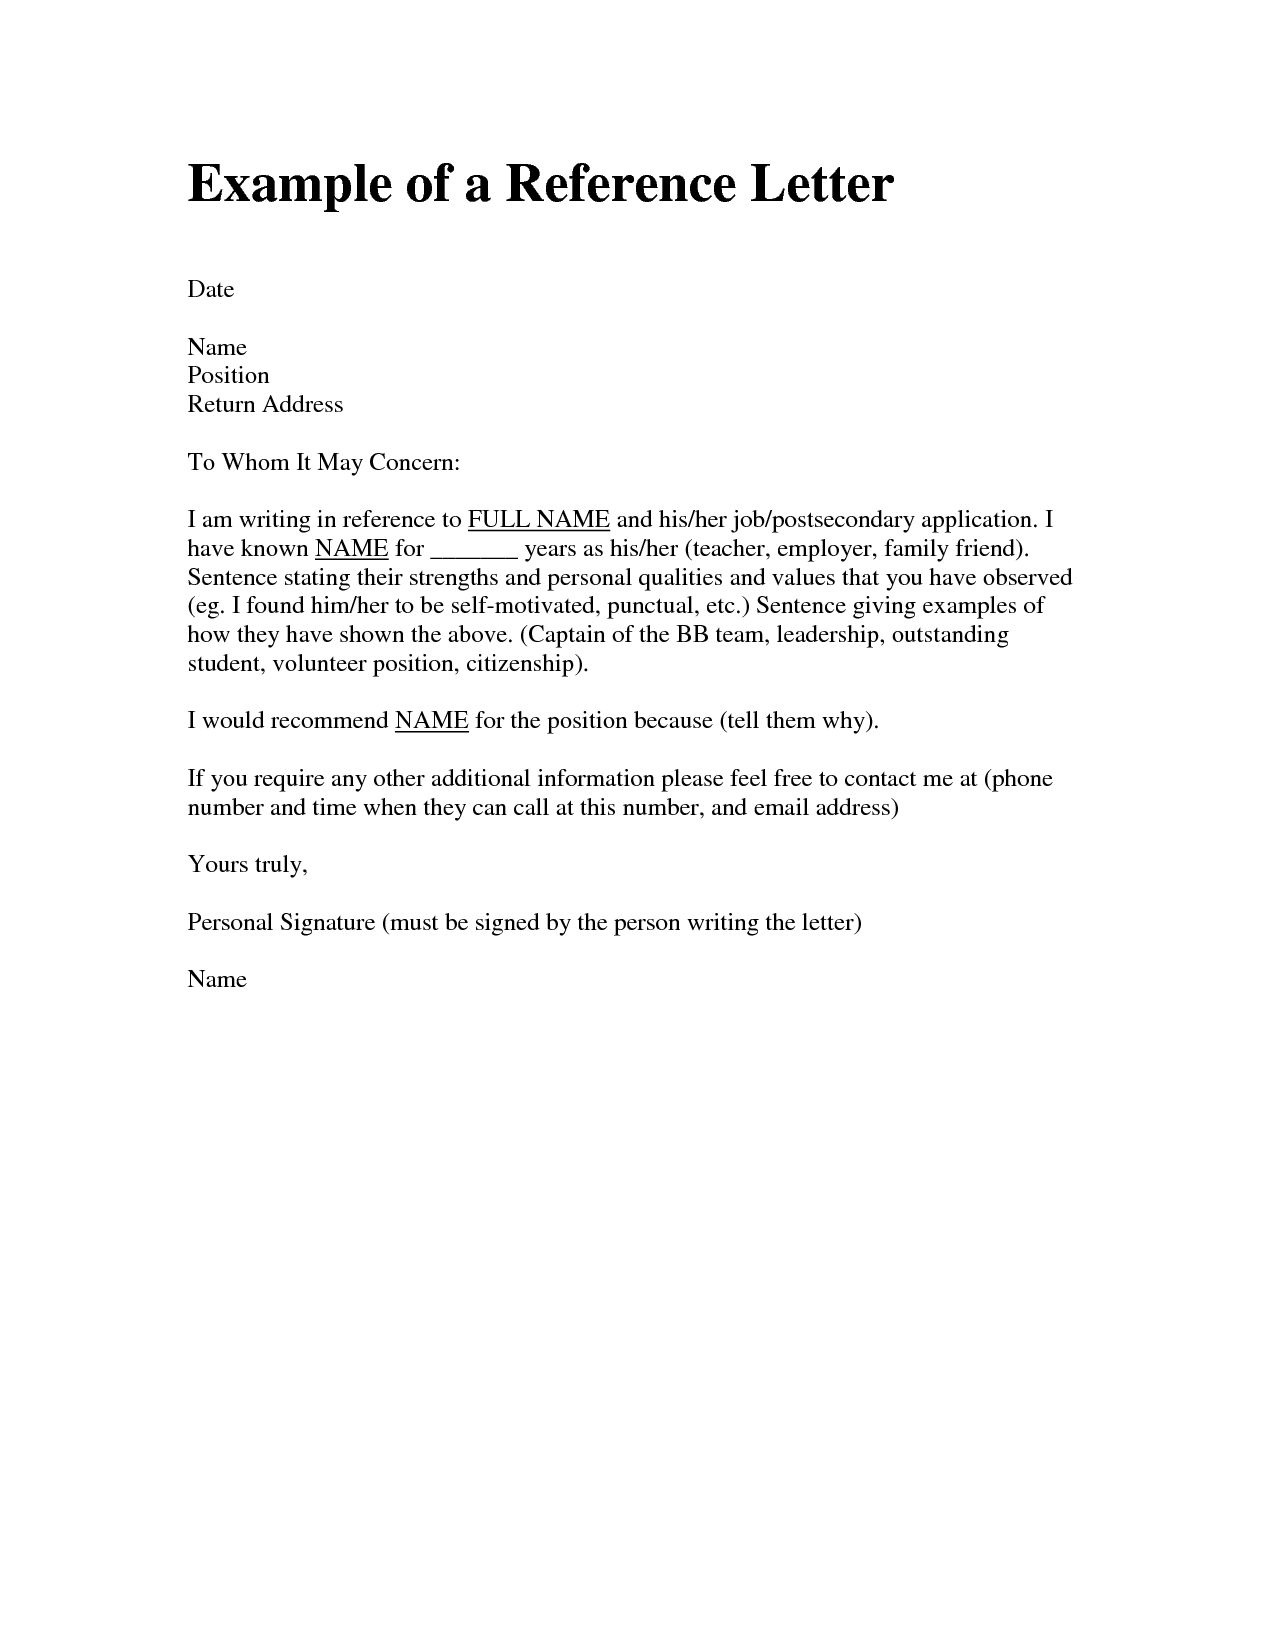 Professional Reference Letter Examples from www.addictionary.org